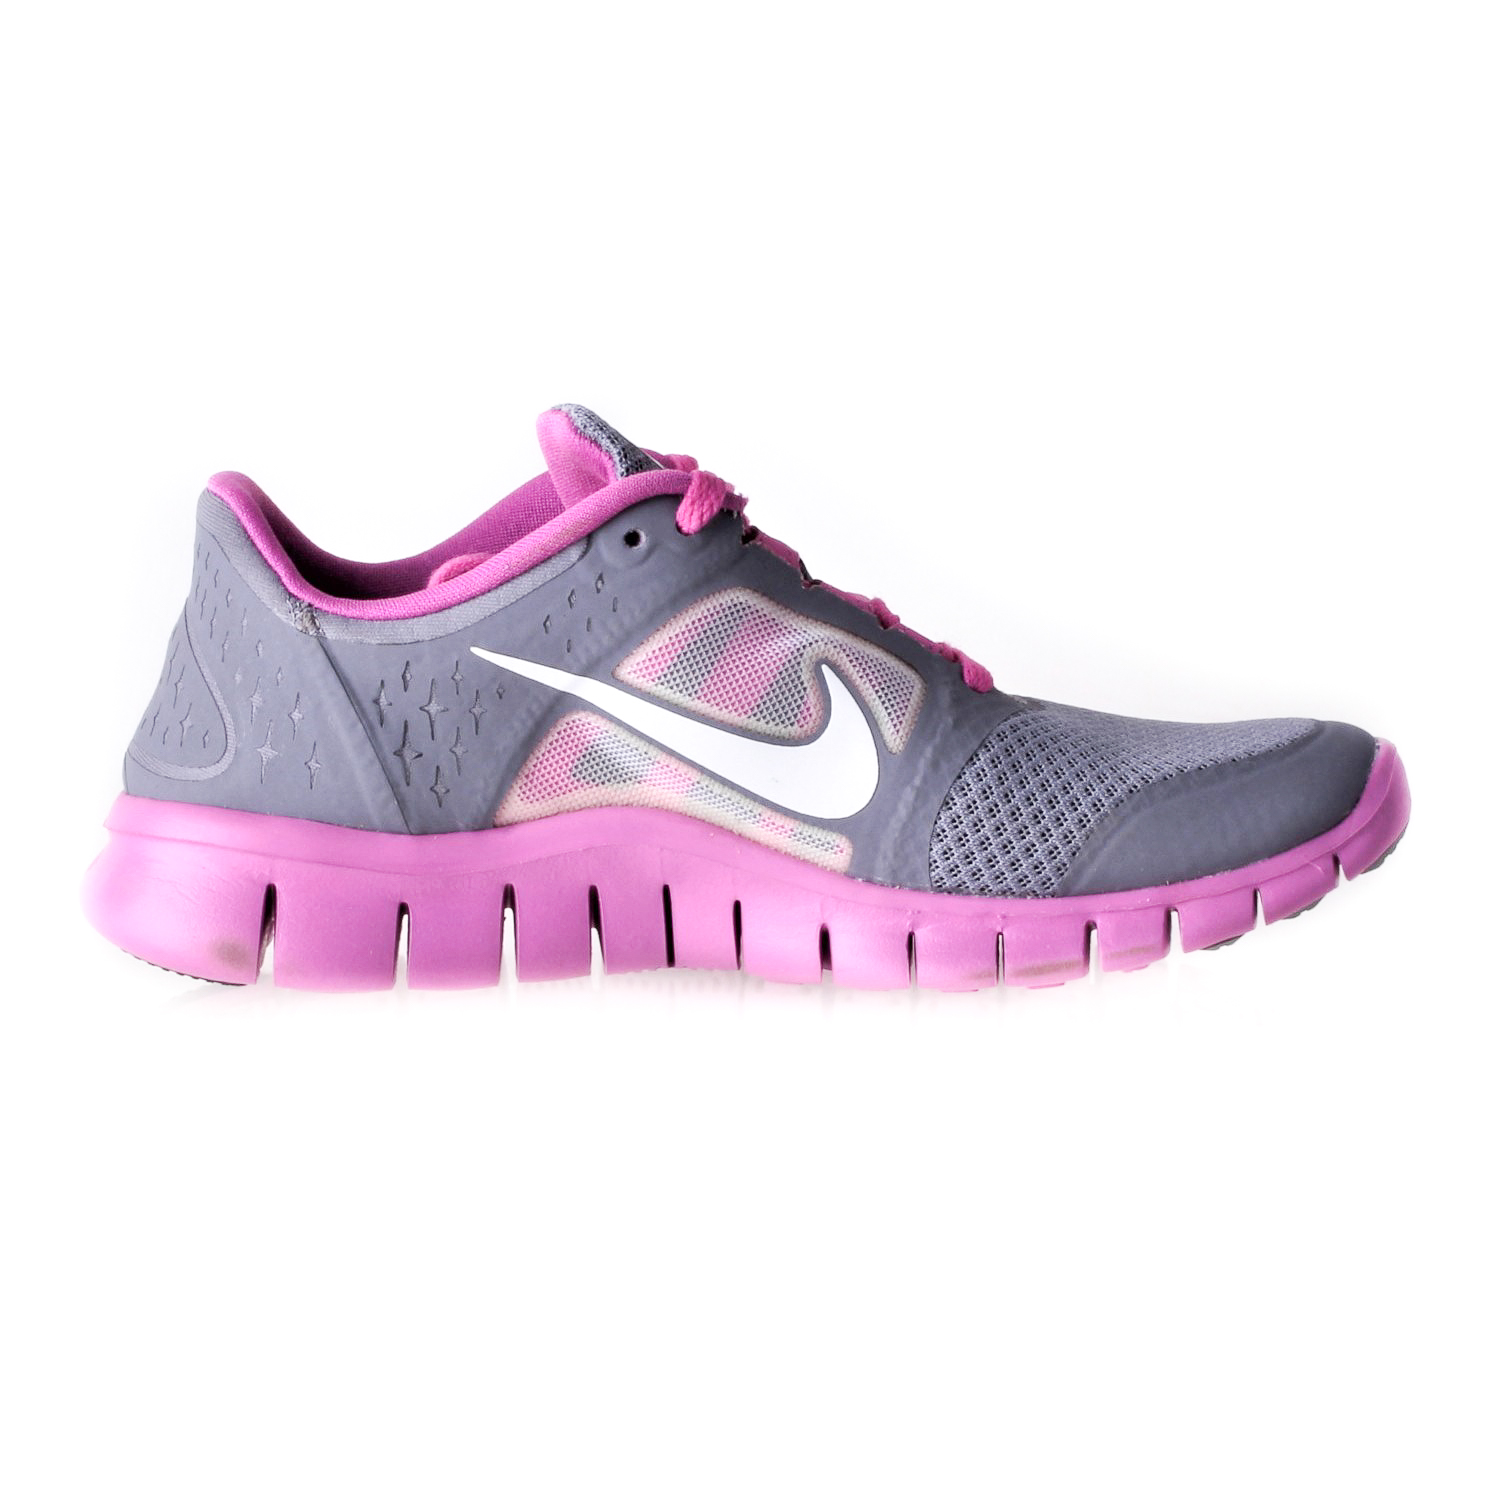 Details about NIKE FREE RUN 3 (GS) KIDS ATHLETIC SHOES 512098 005 size 4